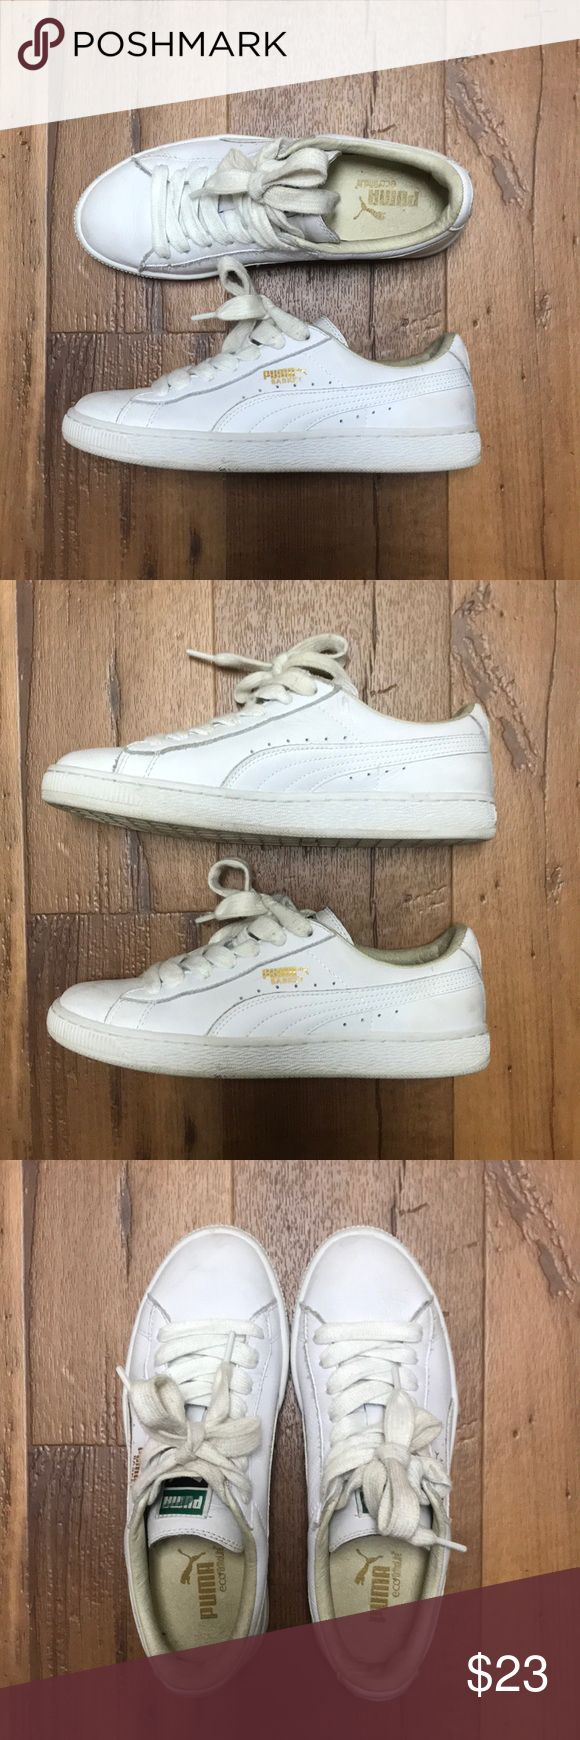 Puma Basket Sneakers Worn a couple times, still in great condition! #puma #sneakers Puma Shoes Sneakers